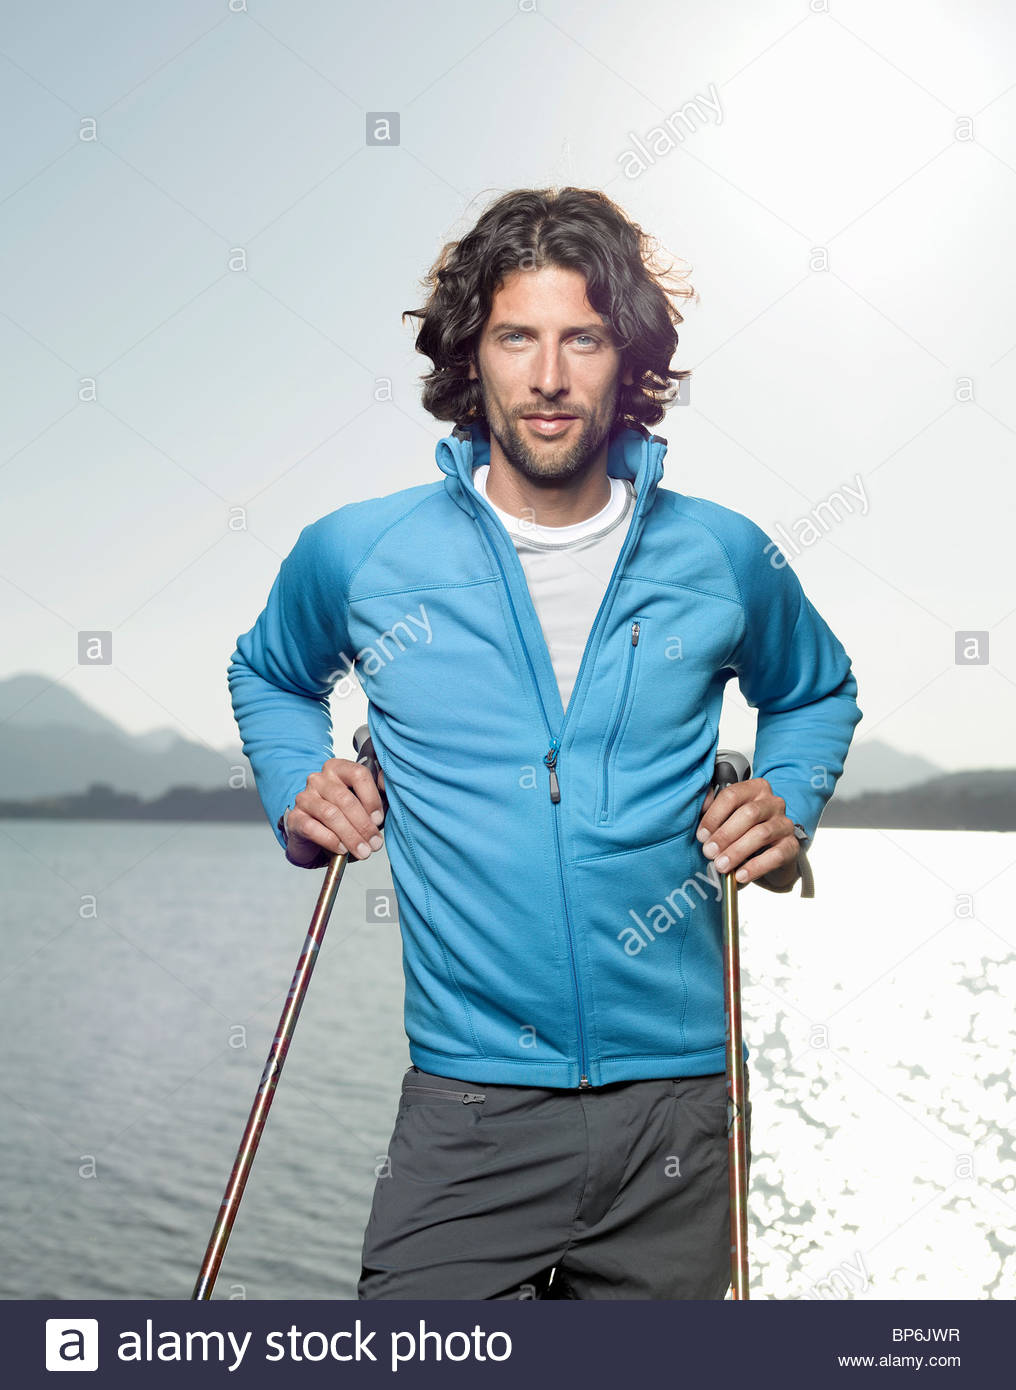 A young man beside a lake holding walking poles - Stock Image